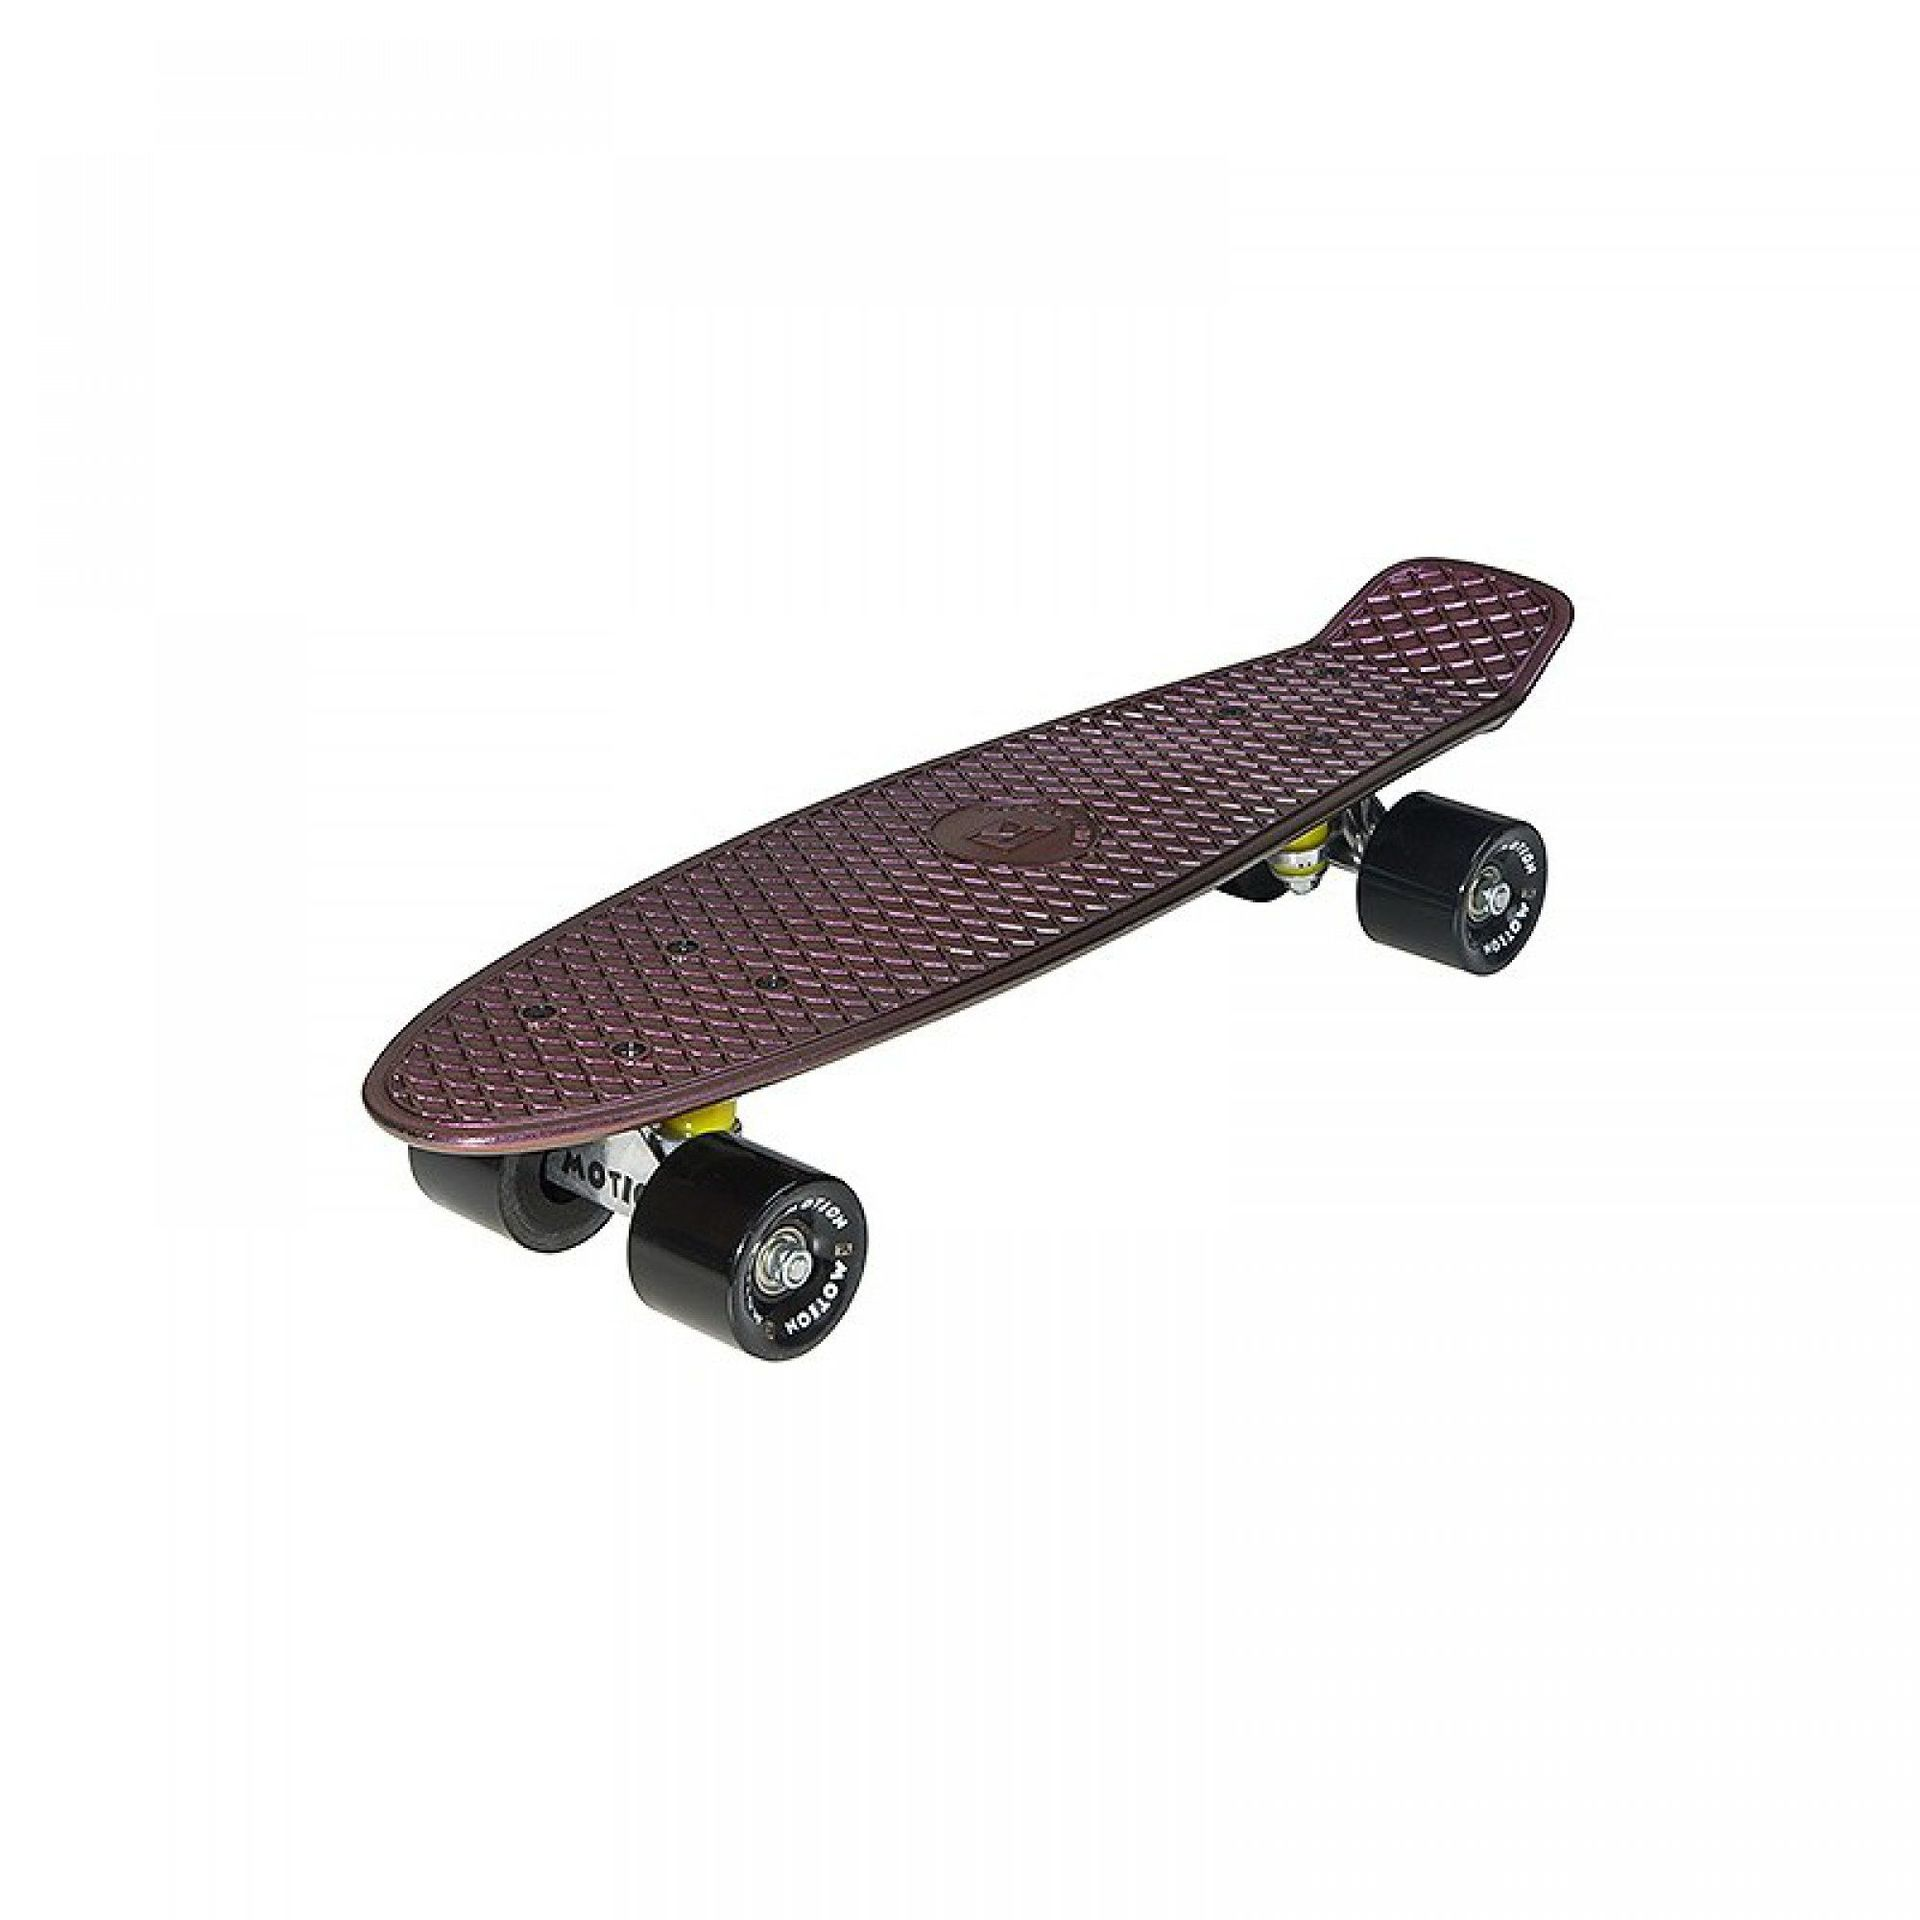 FISHBOARD KIDZ MOTION WATERMELON DECKBOARD 311 1